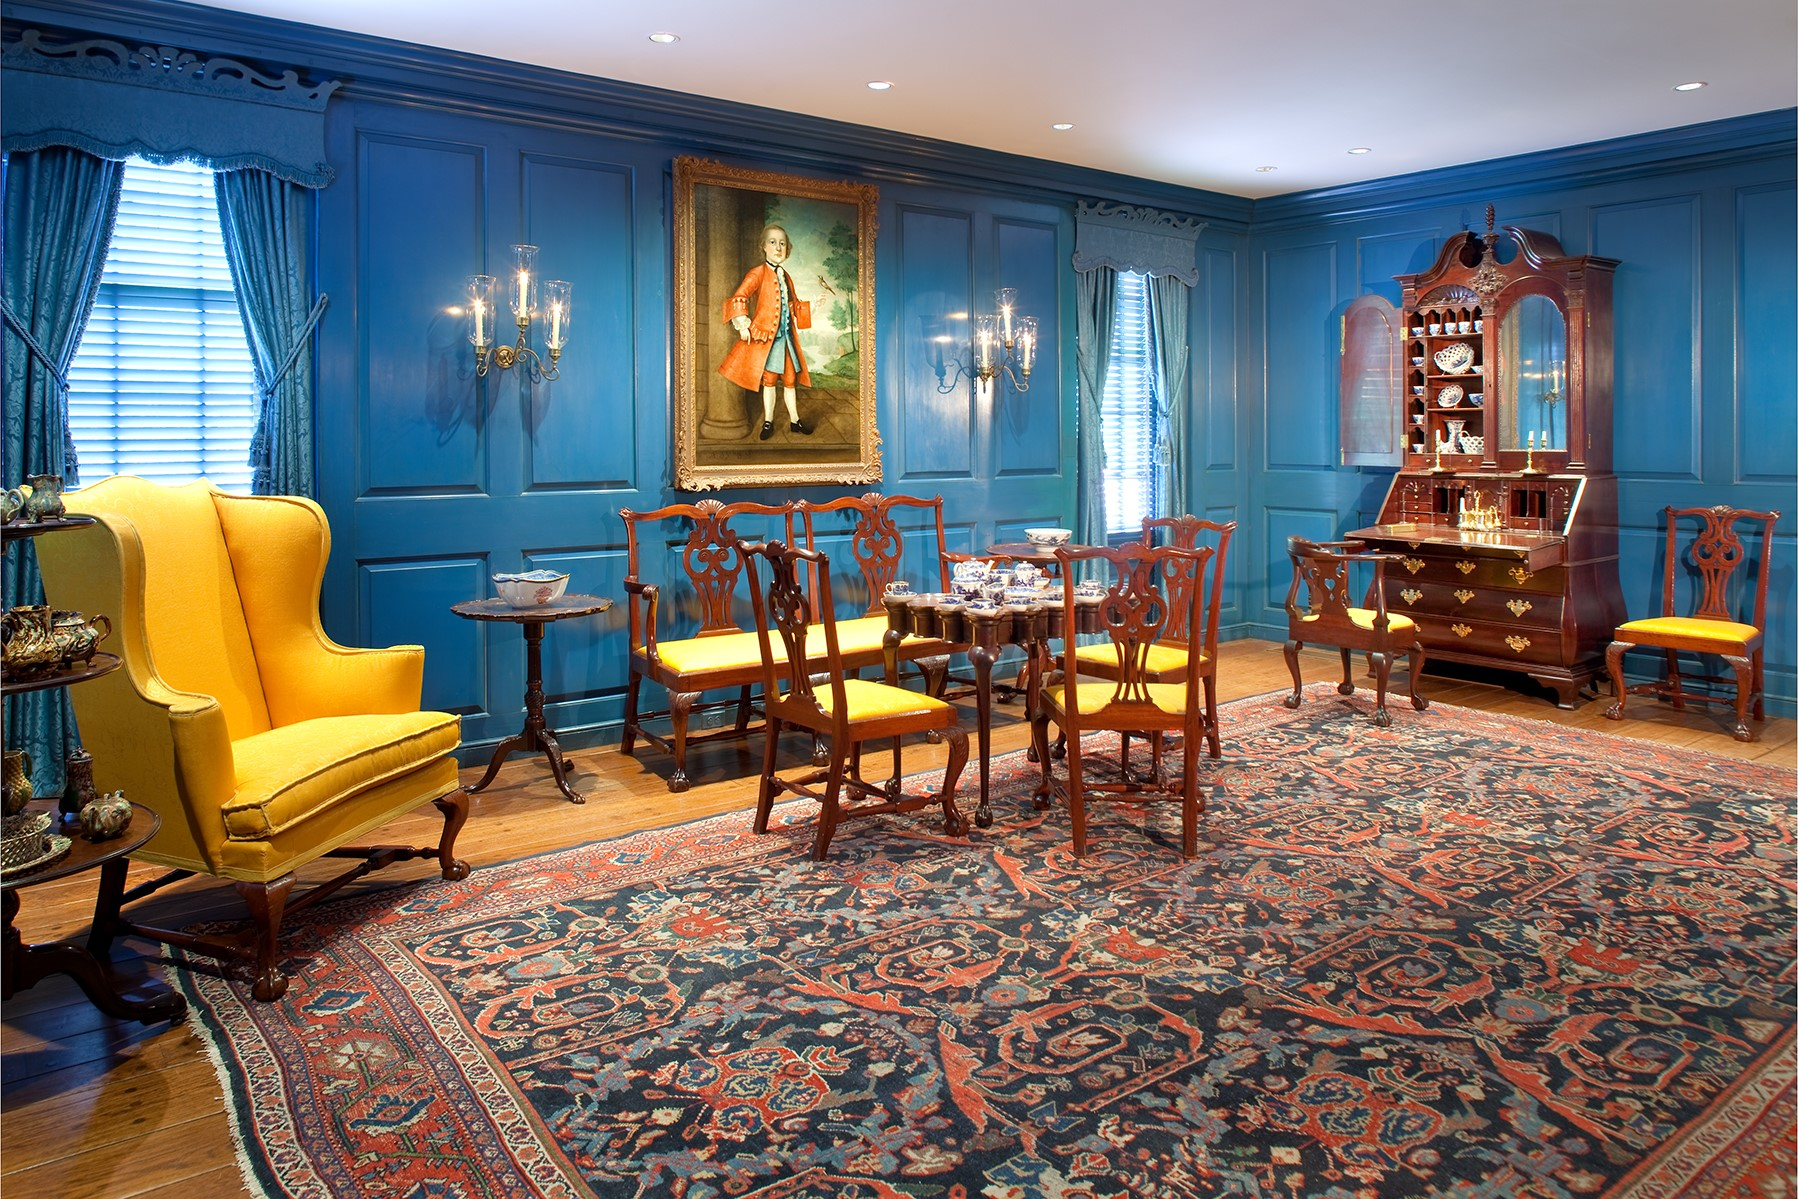 Bayou Bend period room interiors - Massachusetts Room